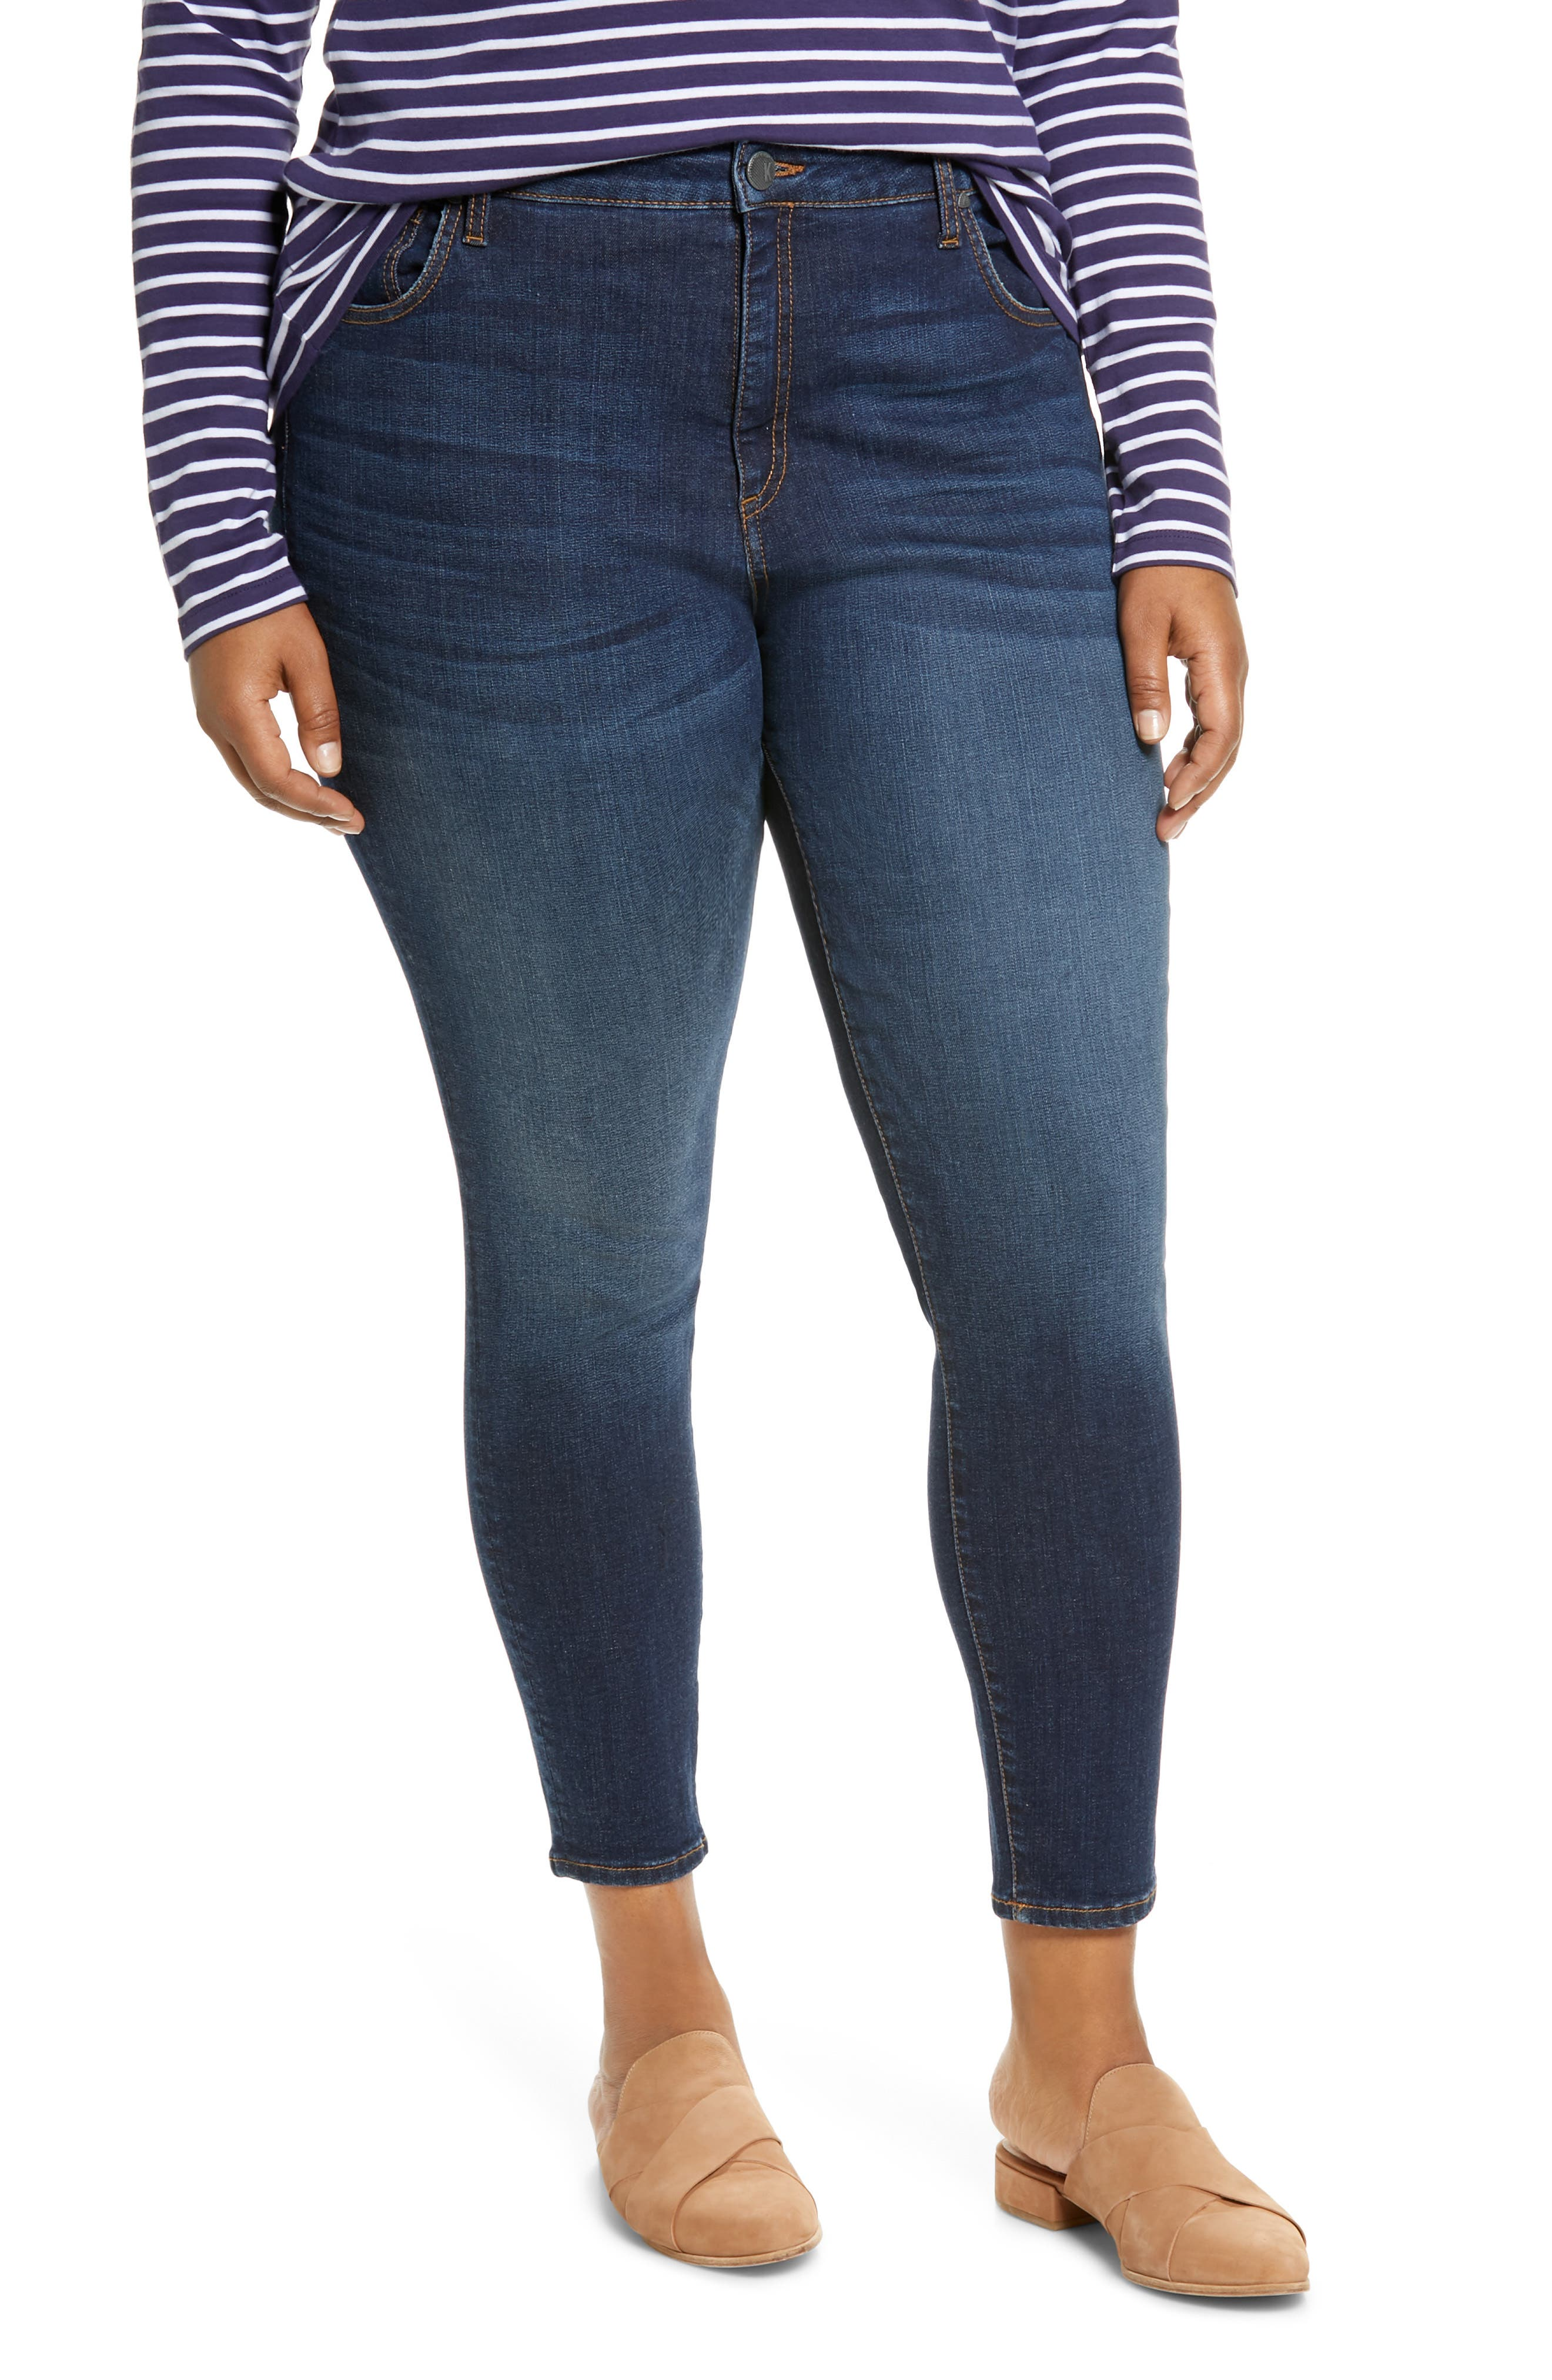 A dark-indigo wear-with-anything wash enhances the sleek fit of high-waisted skinnies made with just the right amount of stretch. Style Name: Kut From The Kloth Donna High Waist Ankle Skinny Jeans (Civic) (Plus Size). Style Number: 6057716. Available in stores.